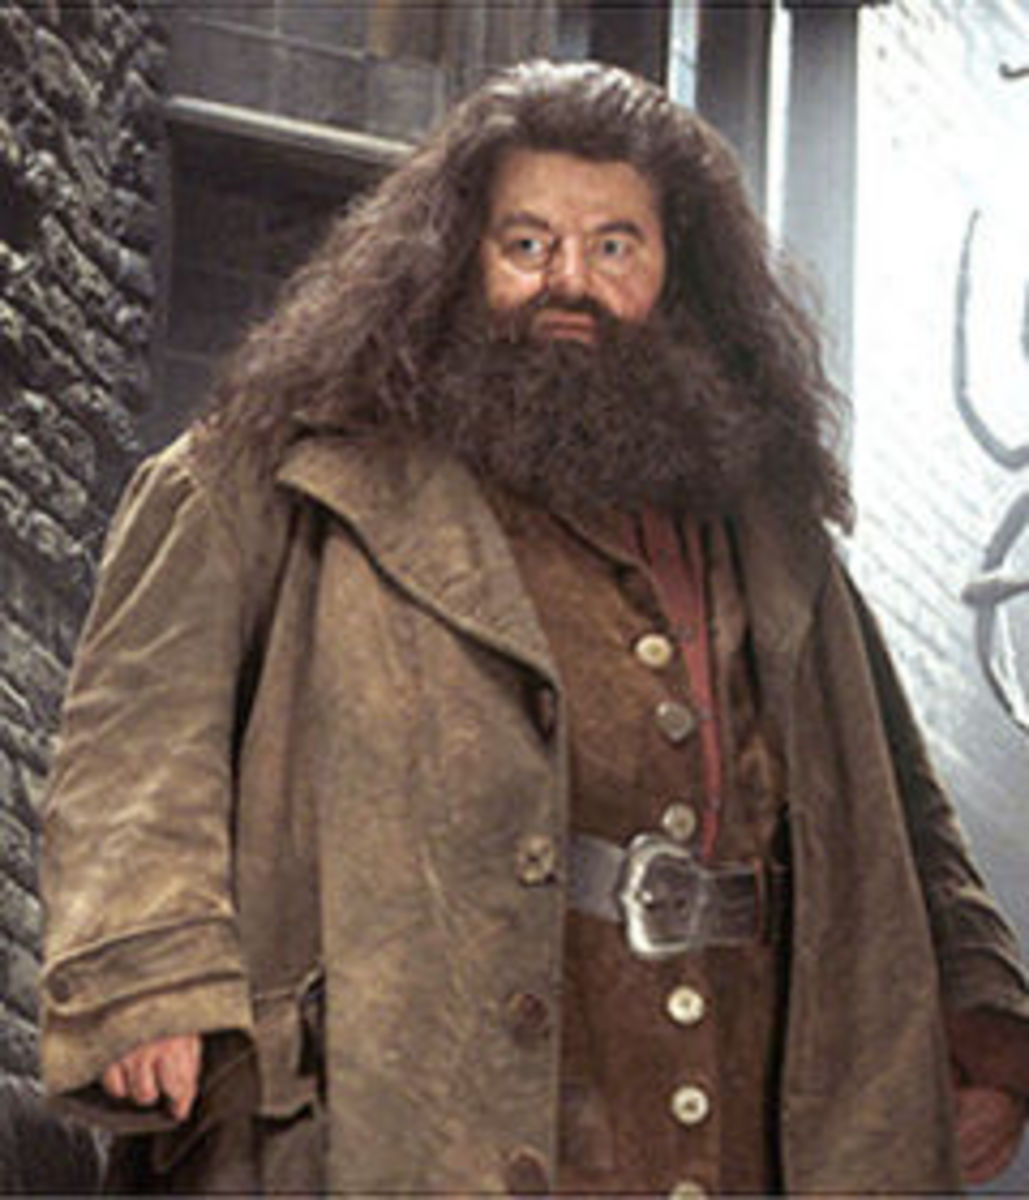 Actor Robbie Coltrane as Rubeus Hagrid